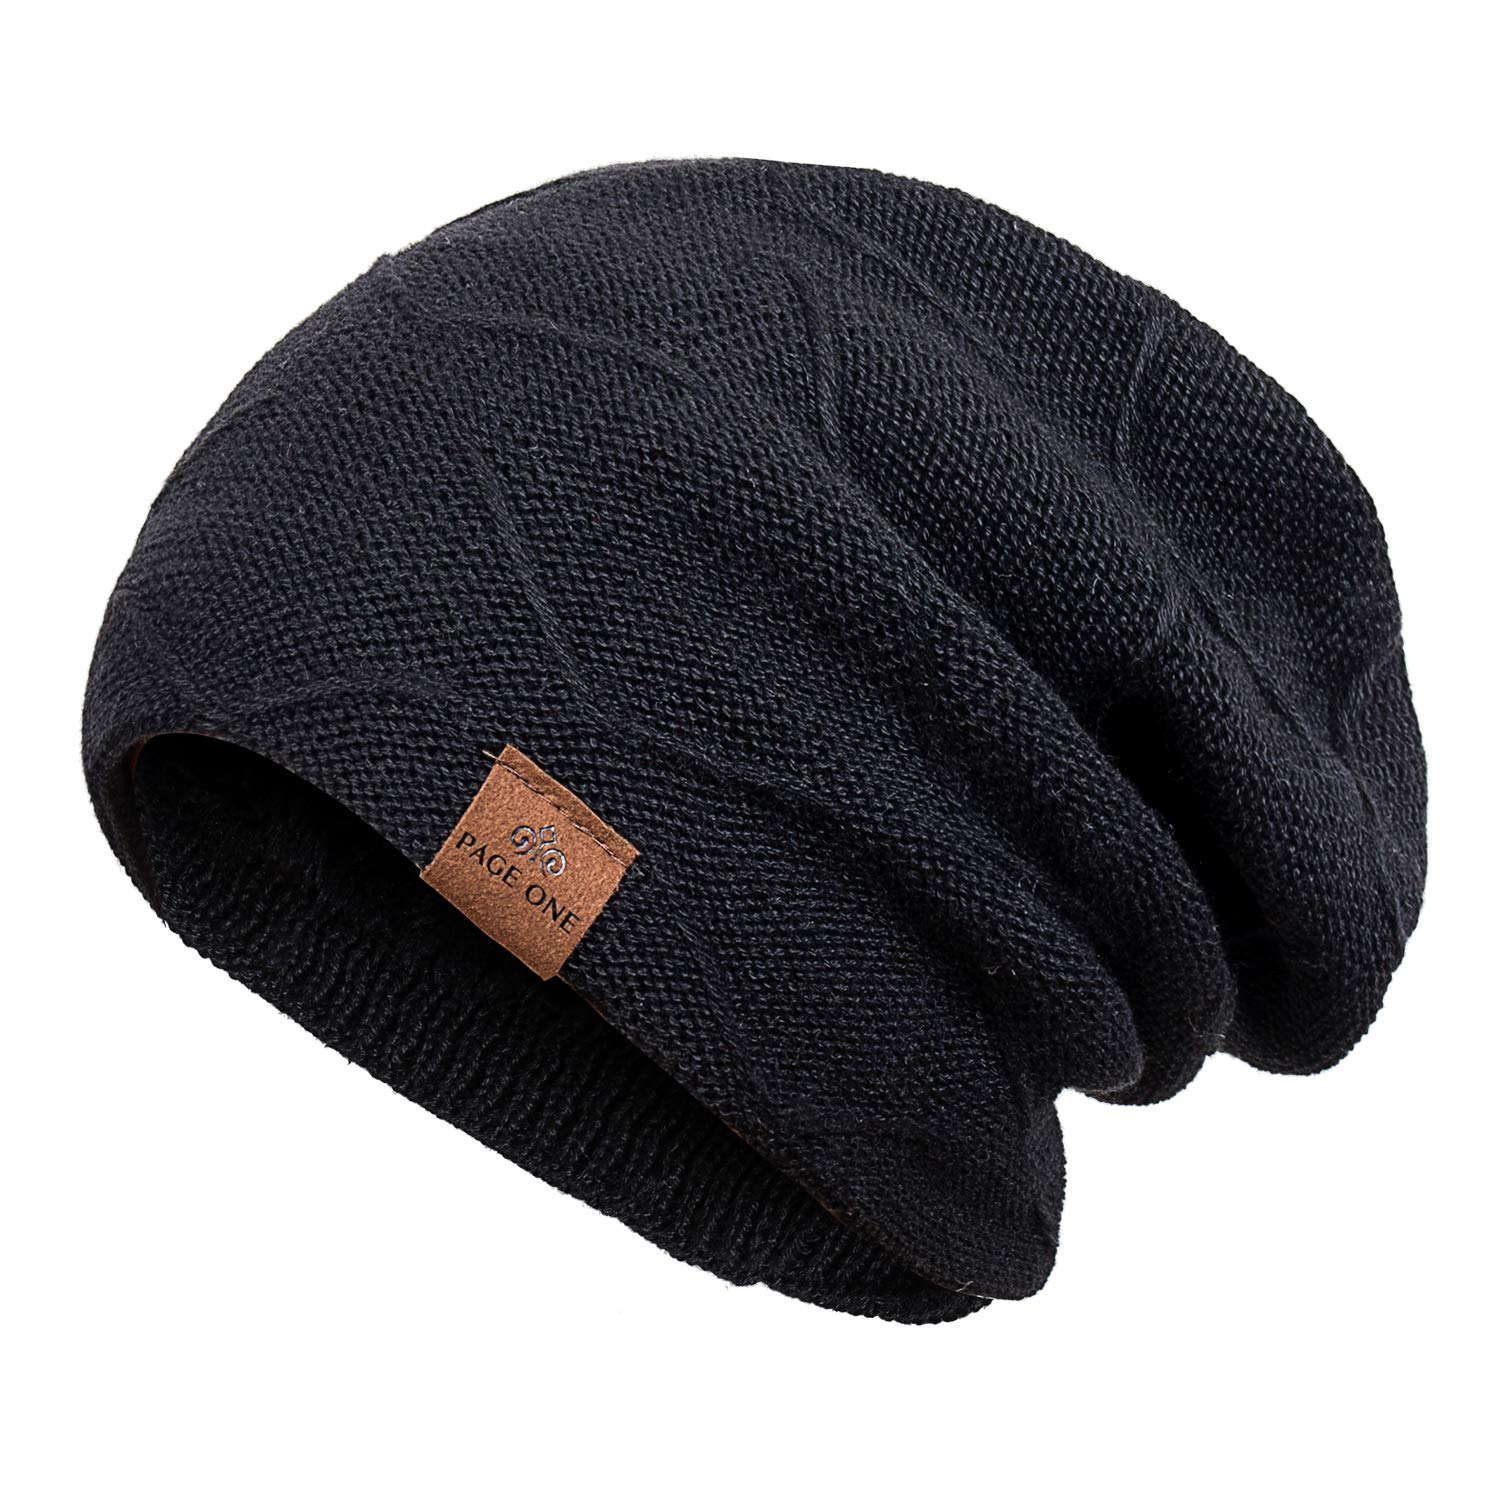 fb6009fa PAGE ONE Mens Winter Baggy Slouchy Beanie Hat Trendy Warm Cable Knit Cap  Men Women product